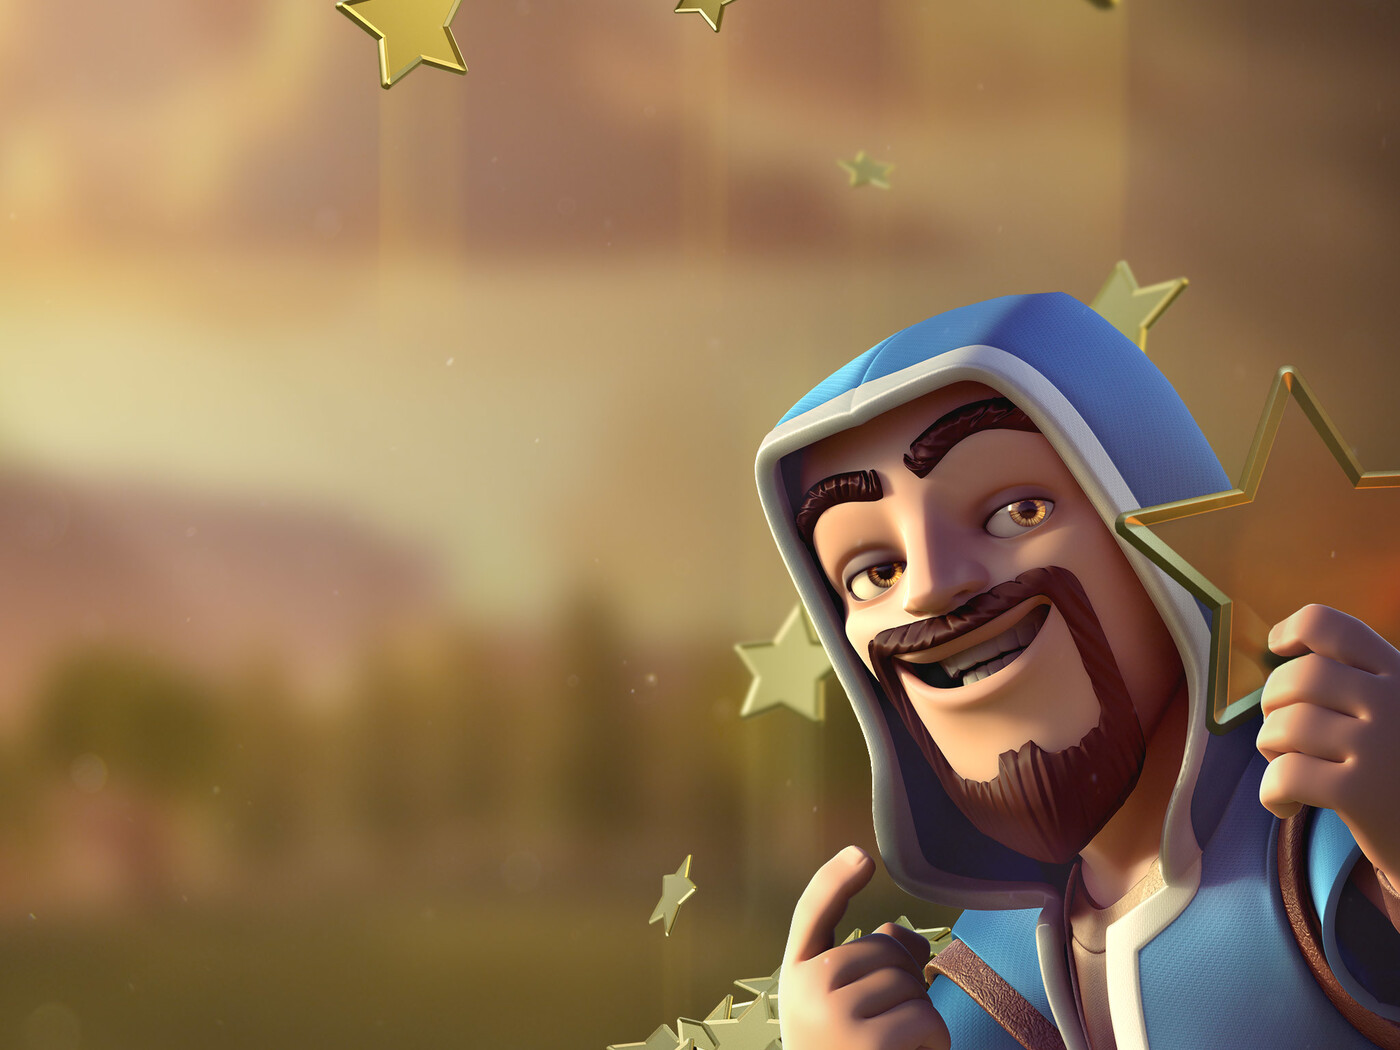 wizard-clash-of-clans-en.jpg